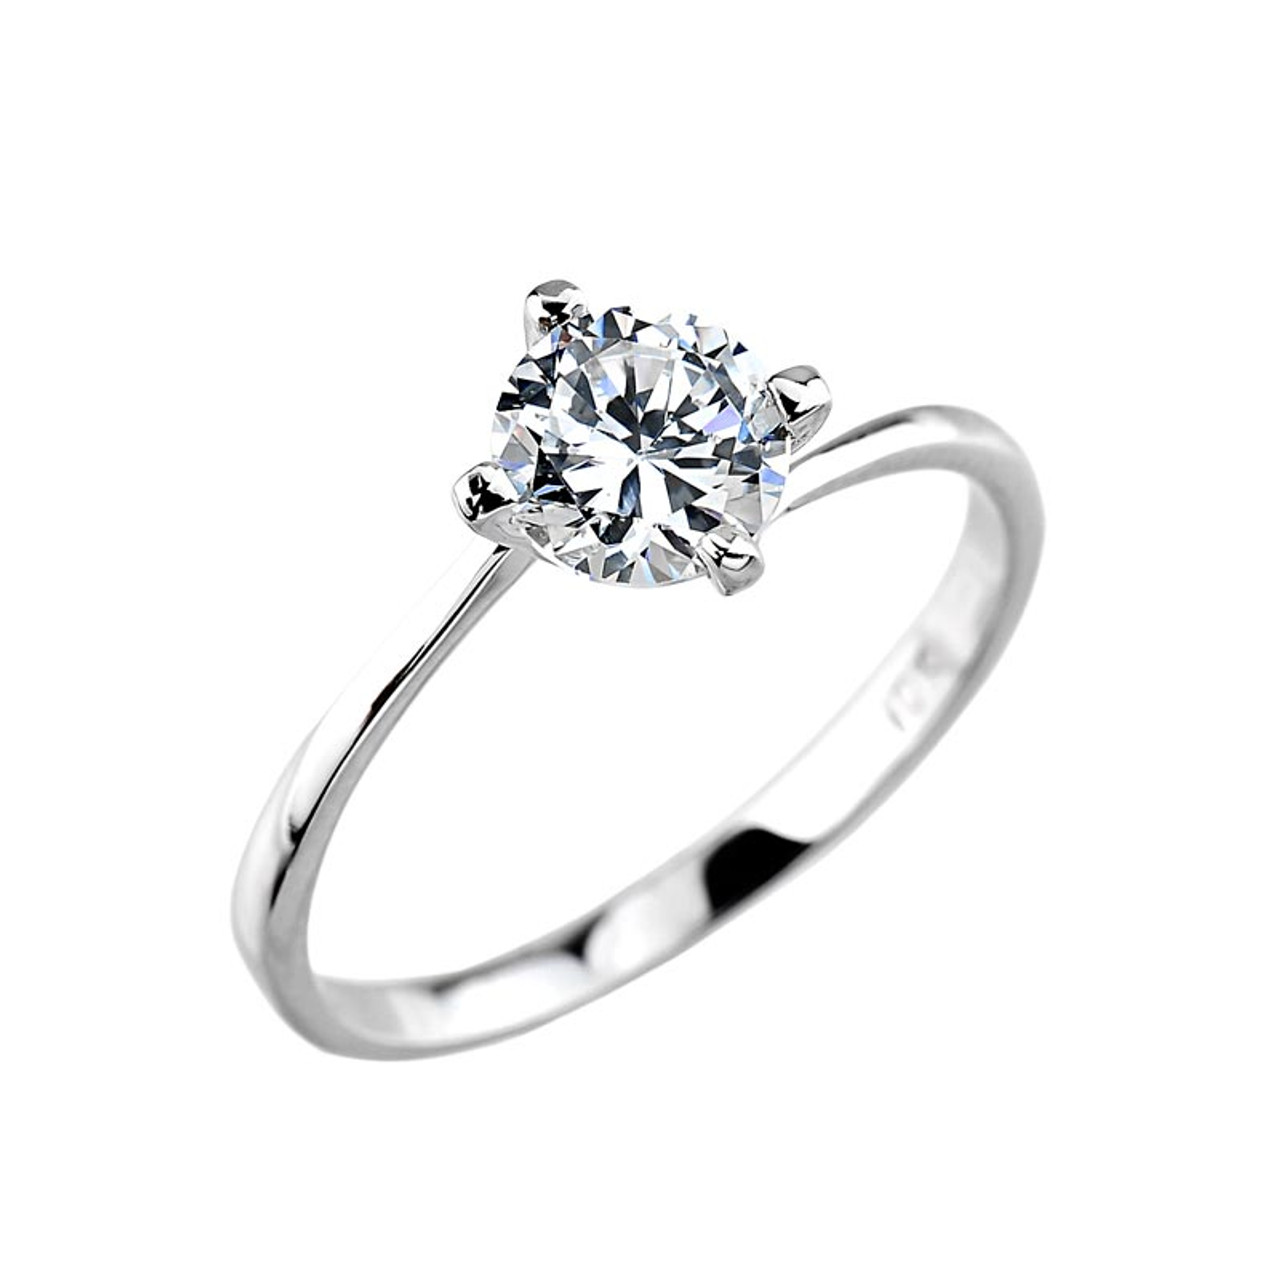 Engagement Ring Cz Engagement Ring White Gold Cz Engagement Ring Cz Solitaire Engagement Ring Round Cz Engagement Ring 2 Ct Cz Engagement Ring